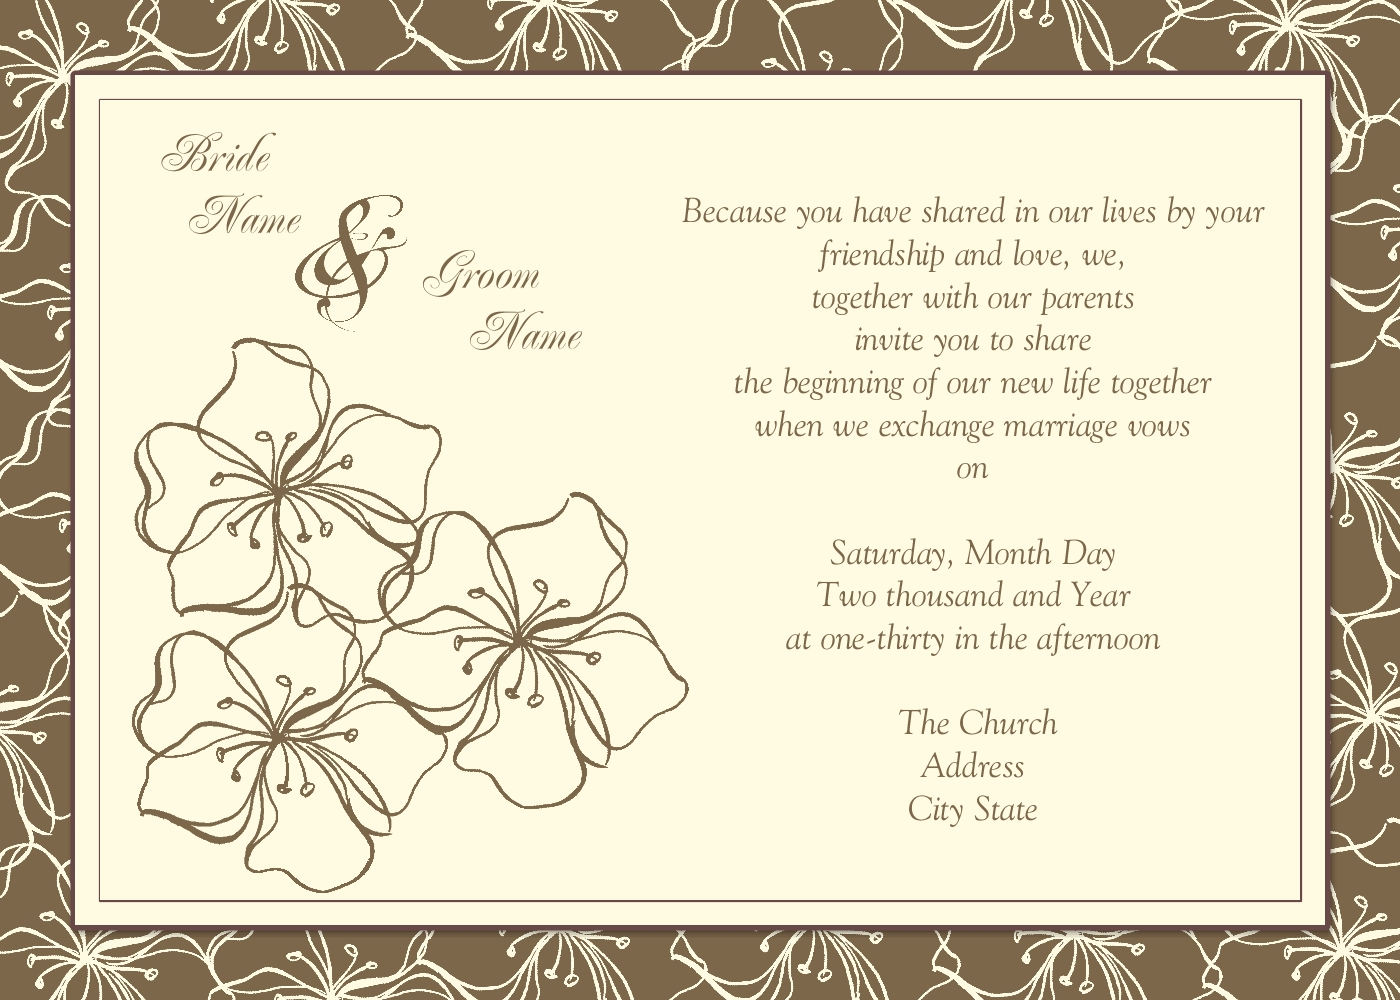 Wedding Card Invitation Messages: MyDiane Designs: Wedding Invitations